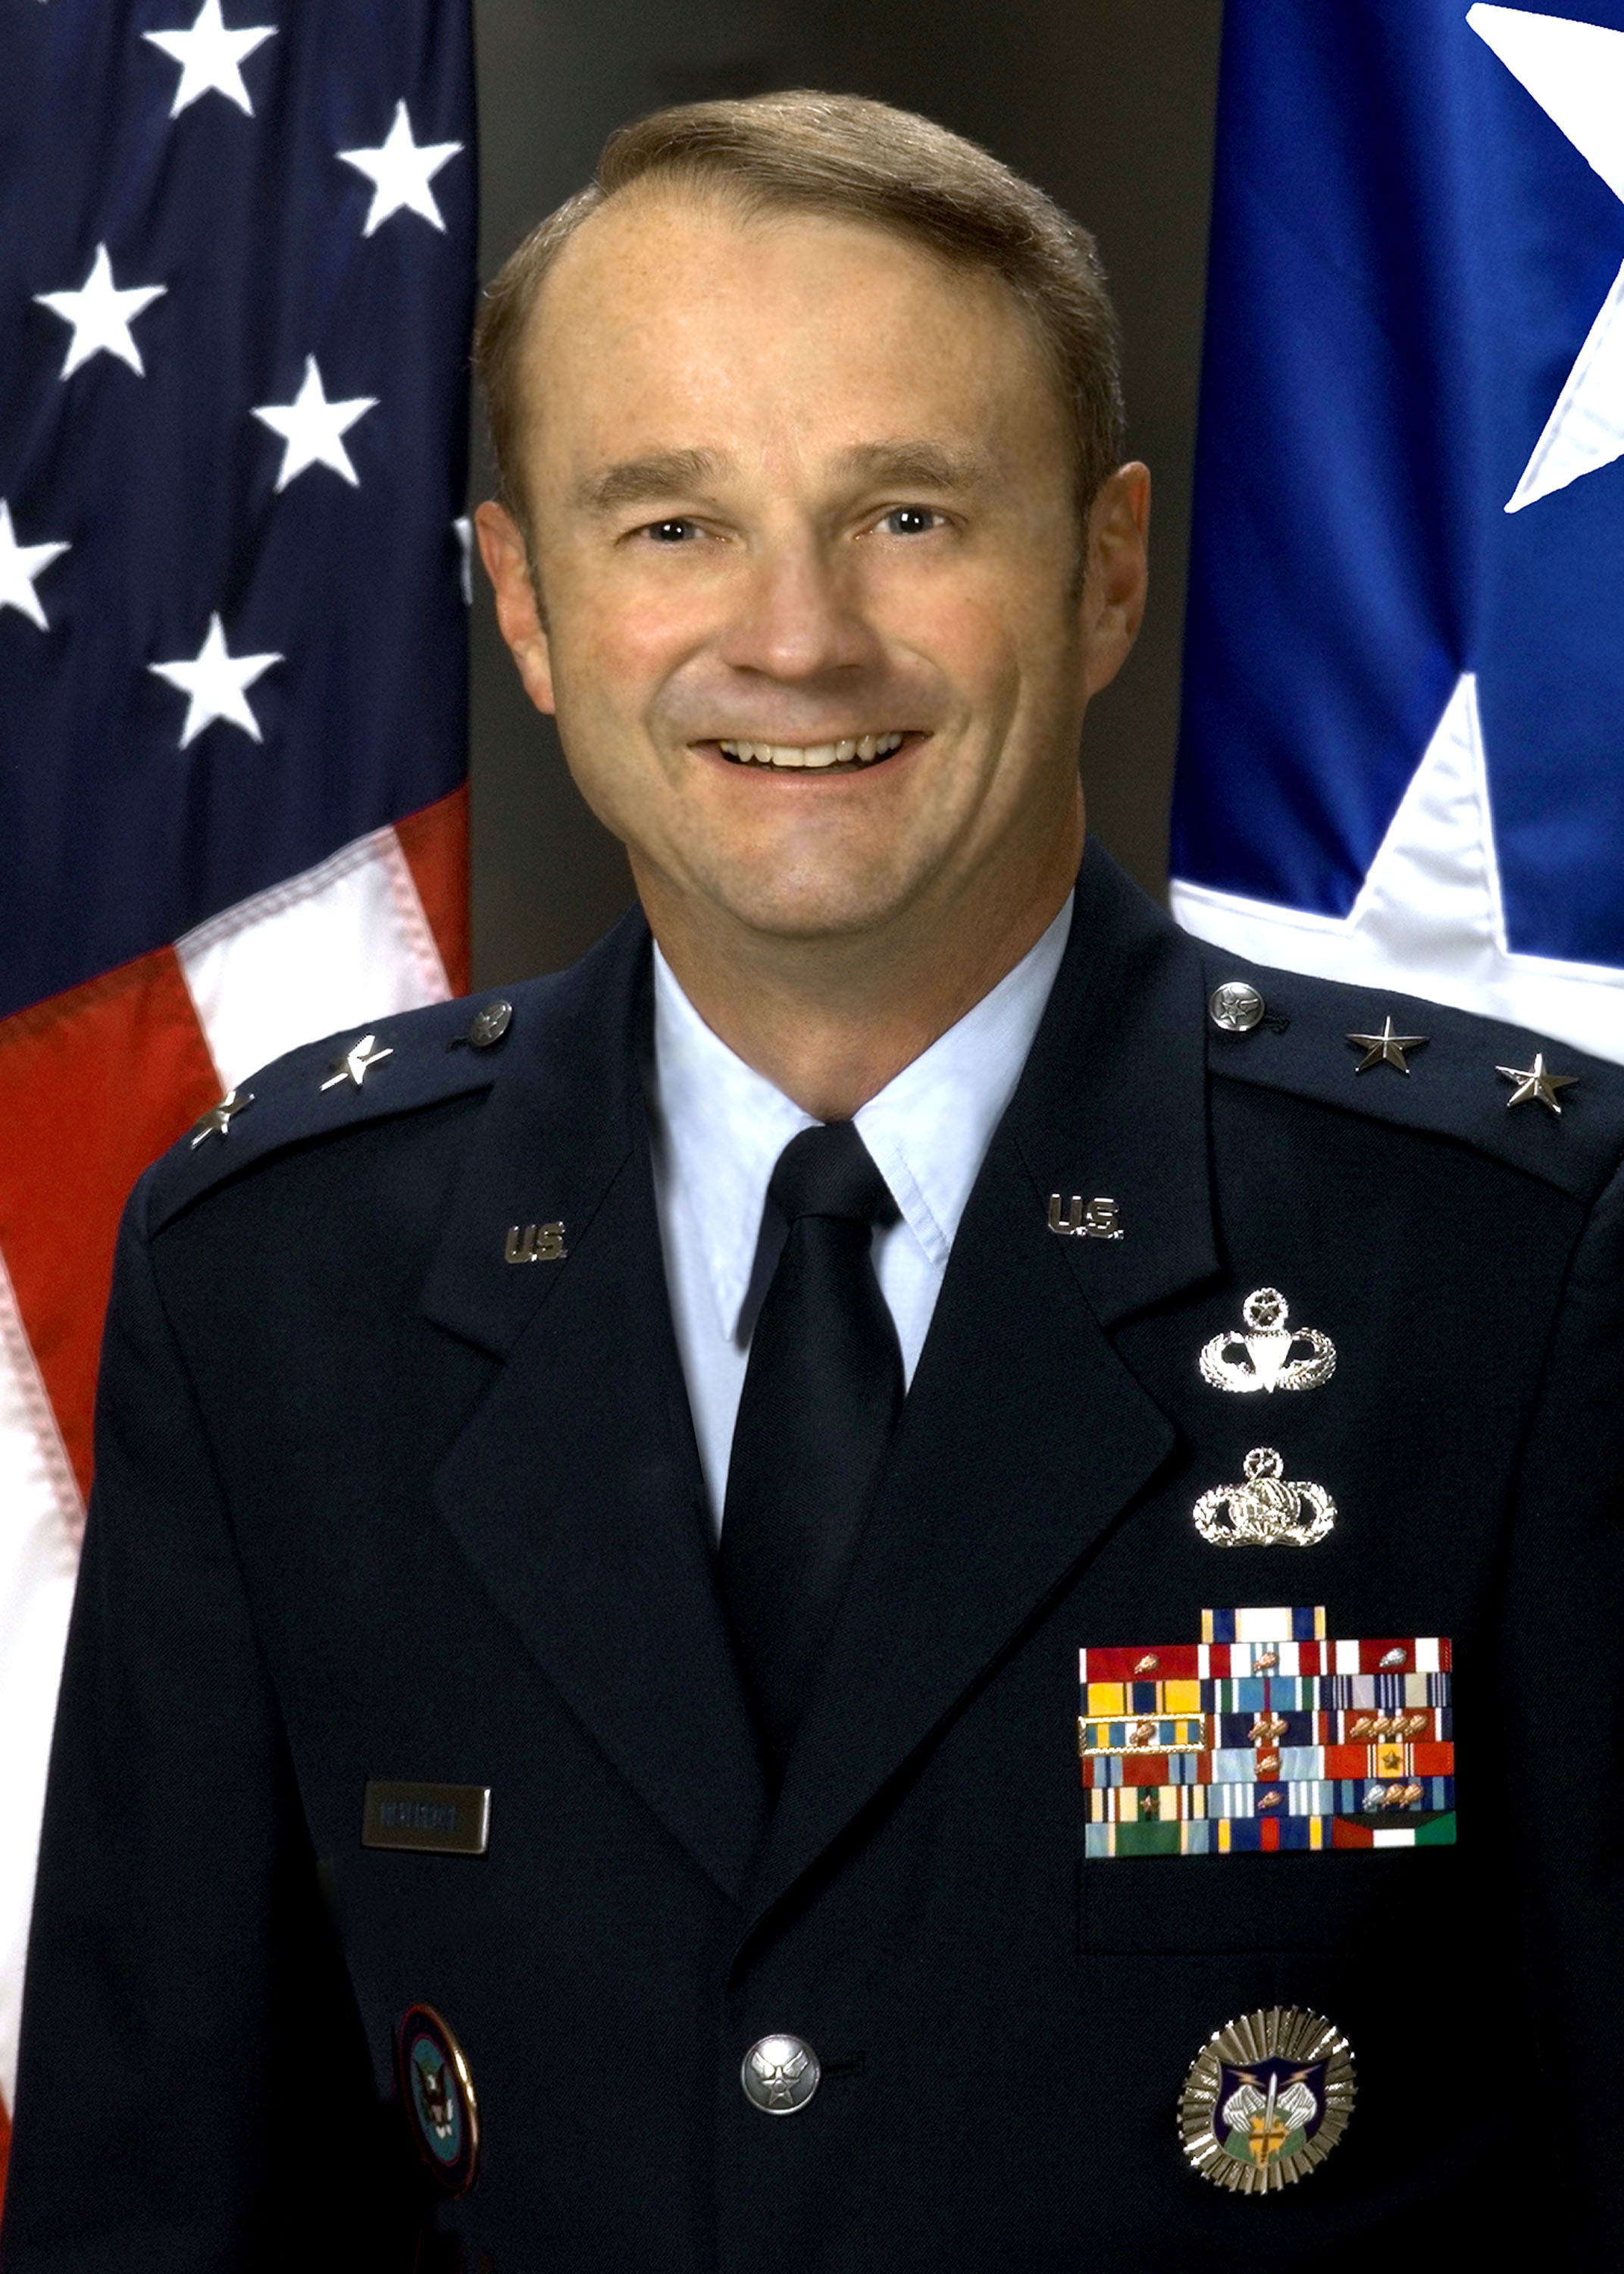 Major General (Ret.) Dale W. Meyerrose